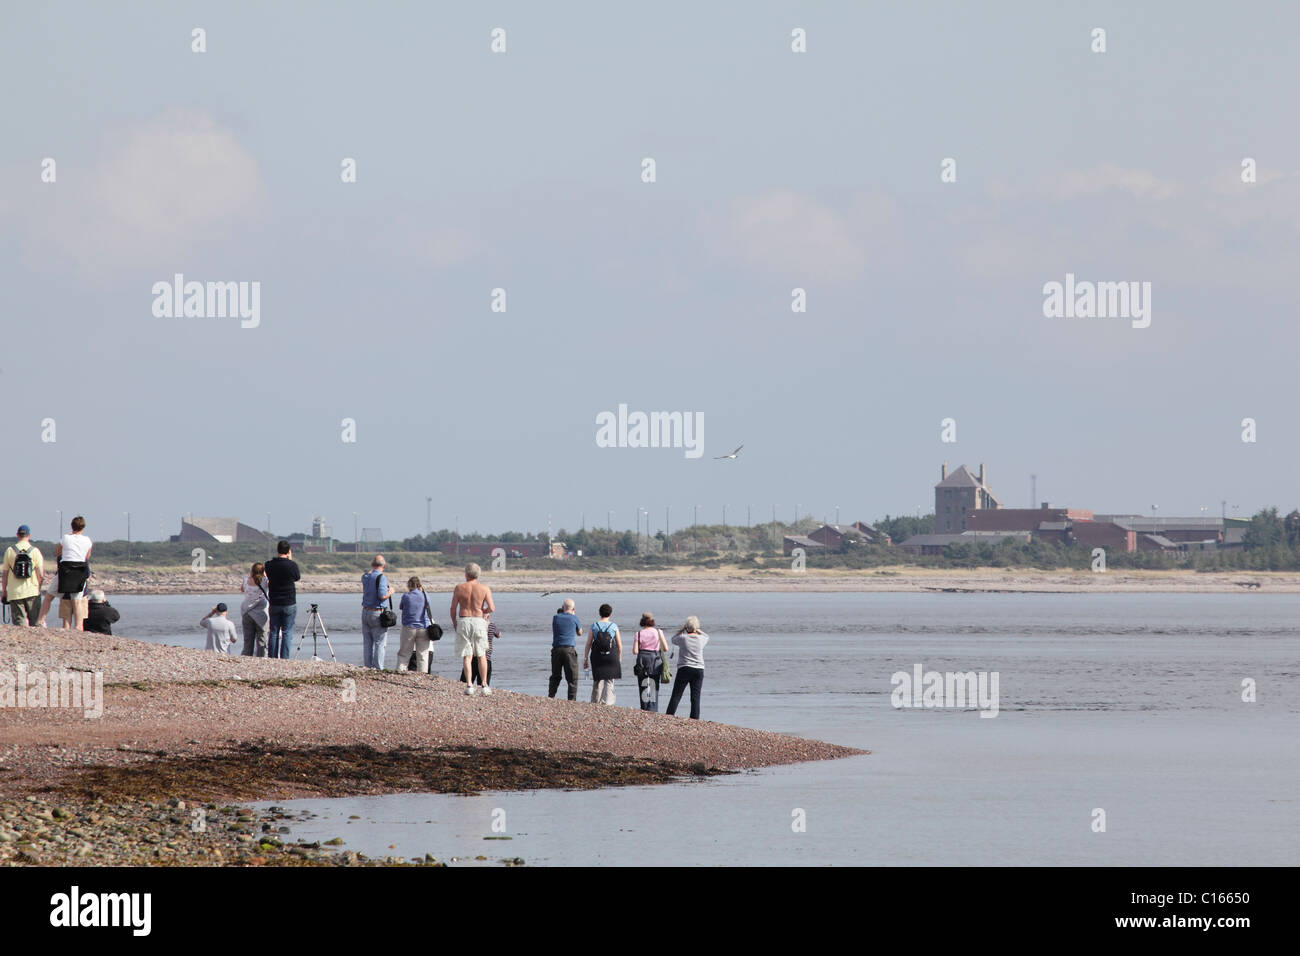 People watching for Bottle Nose Dolphins from Chanonry Point, Black Isle, Scotland, September 2010 - Stock Image